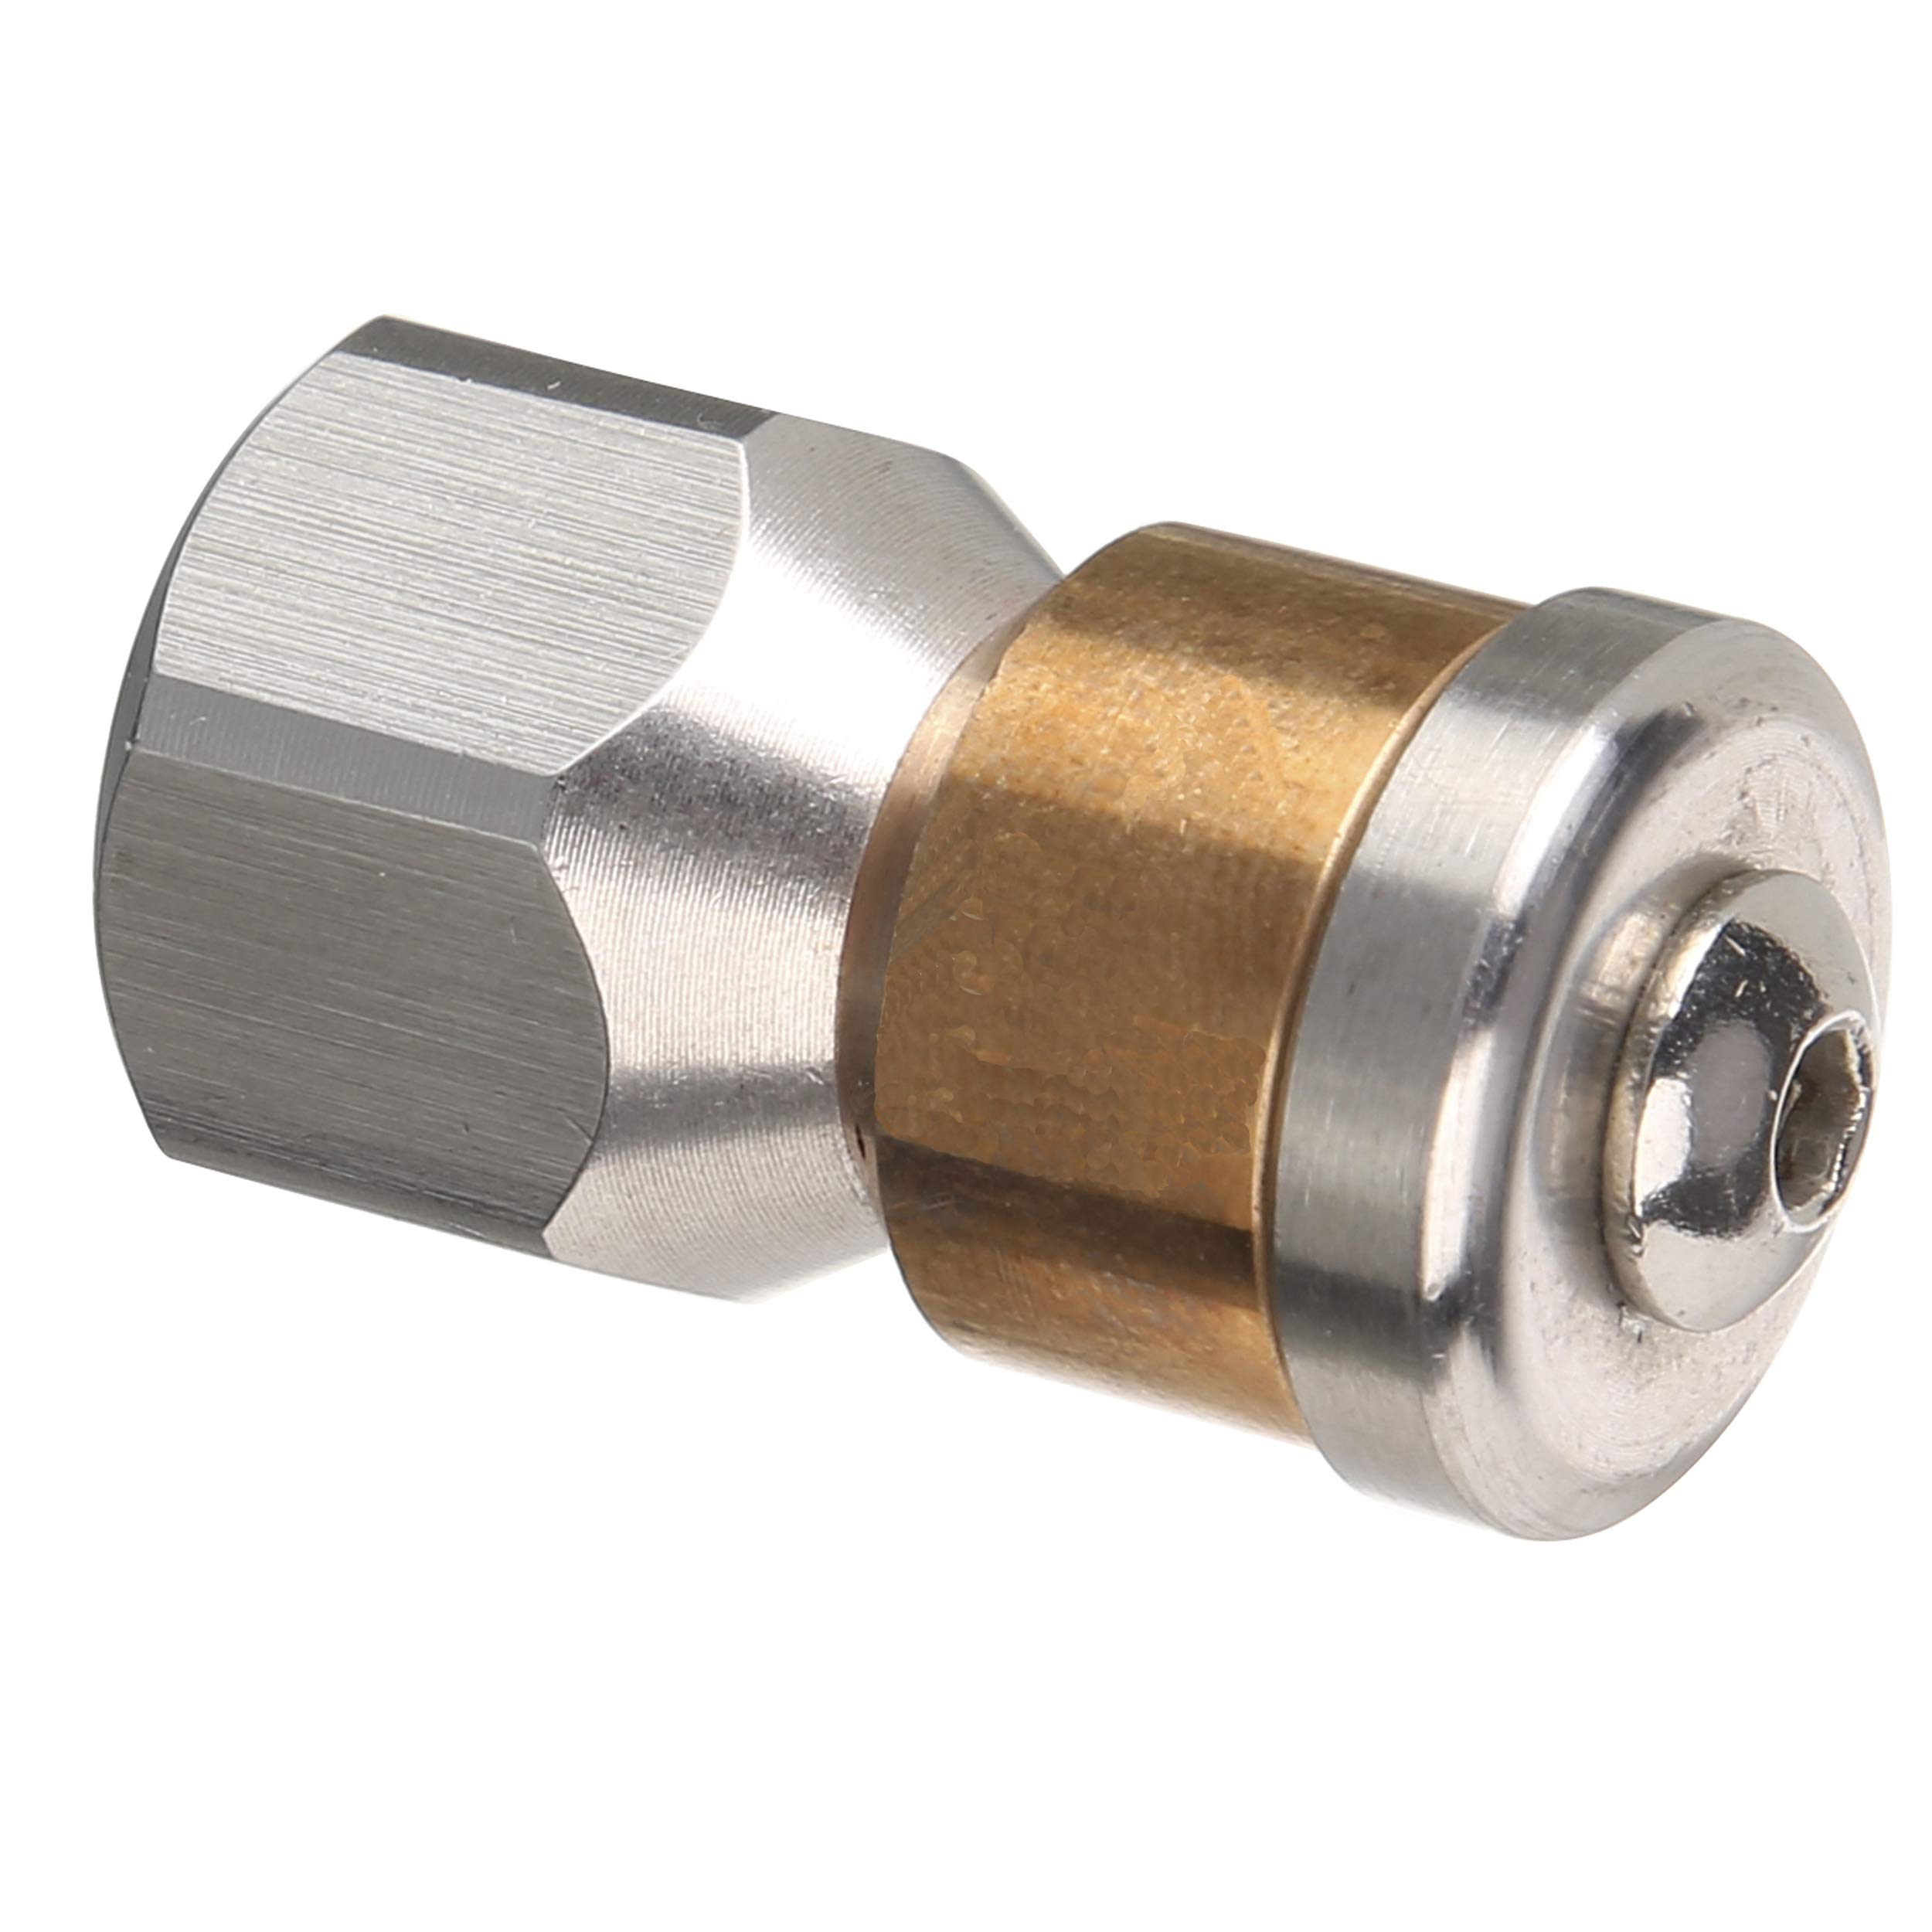 Tool Daily Rotating Sewer Jetter Nozzle for Pressure Washer, 1/4 Inch F-NPT, 4000 PSI